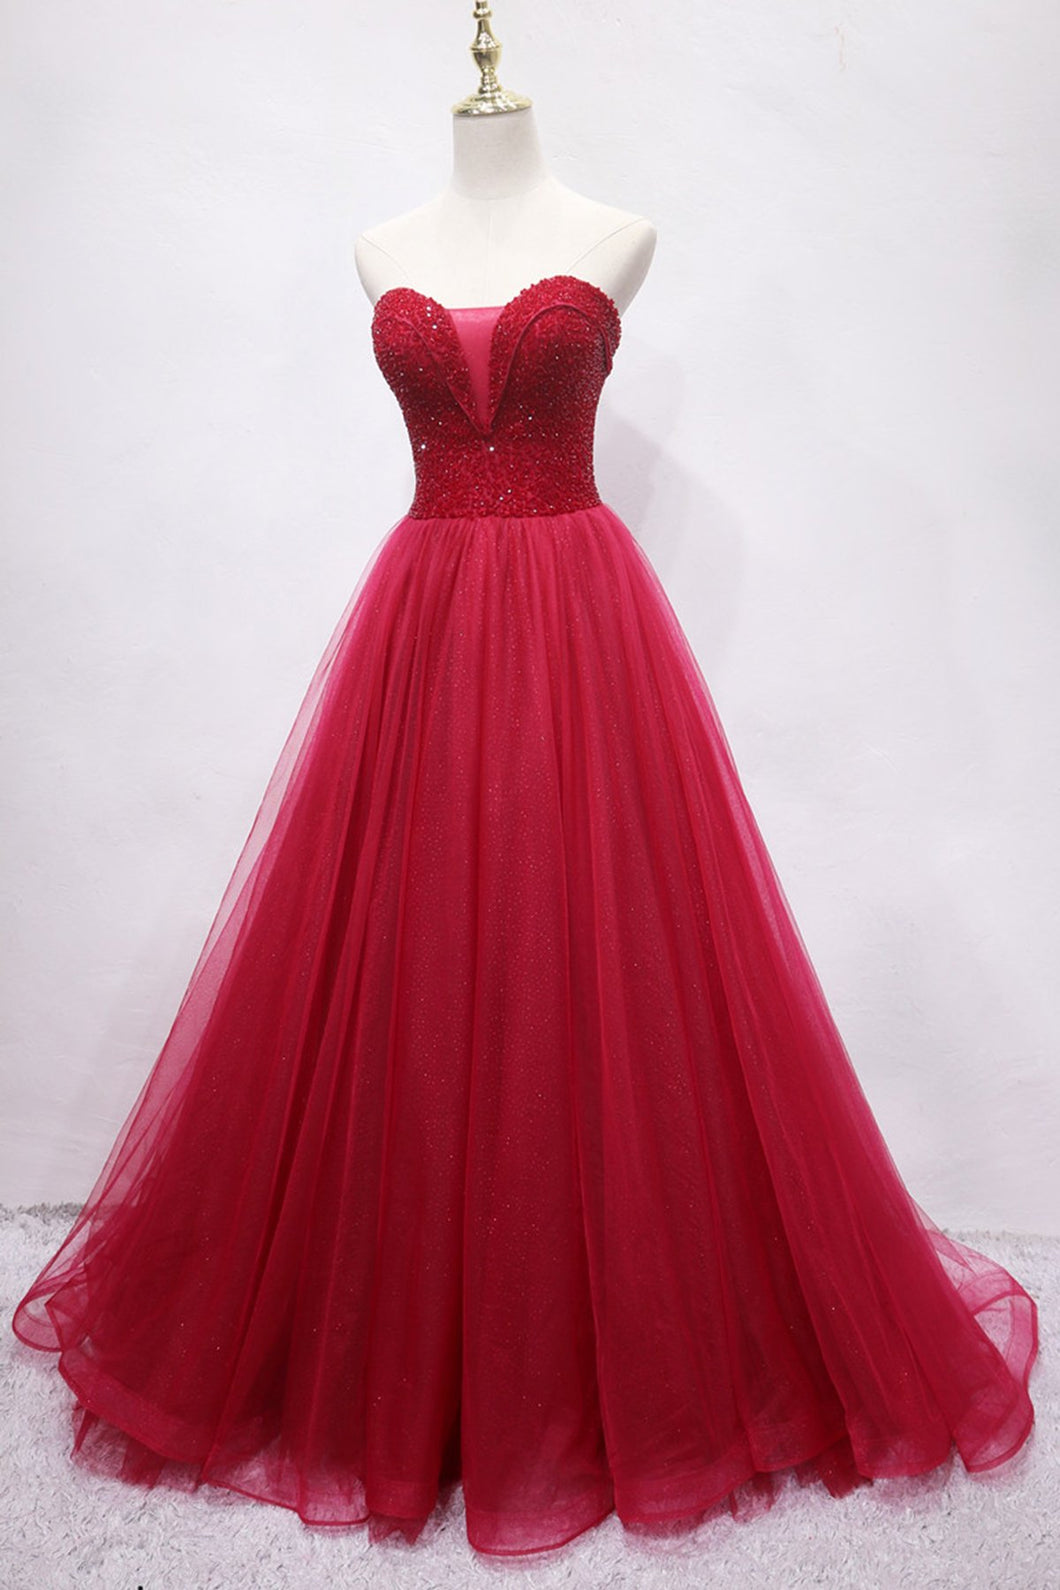 2019 Prom Dresses | Burgundy Tulle Sweetheart Neck Long Crystal Evening Dress, Prom Dress